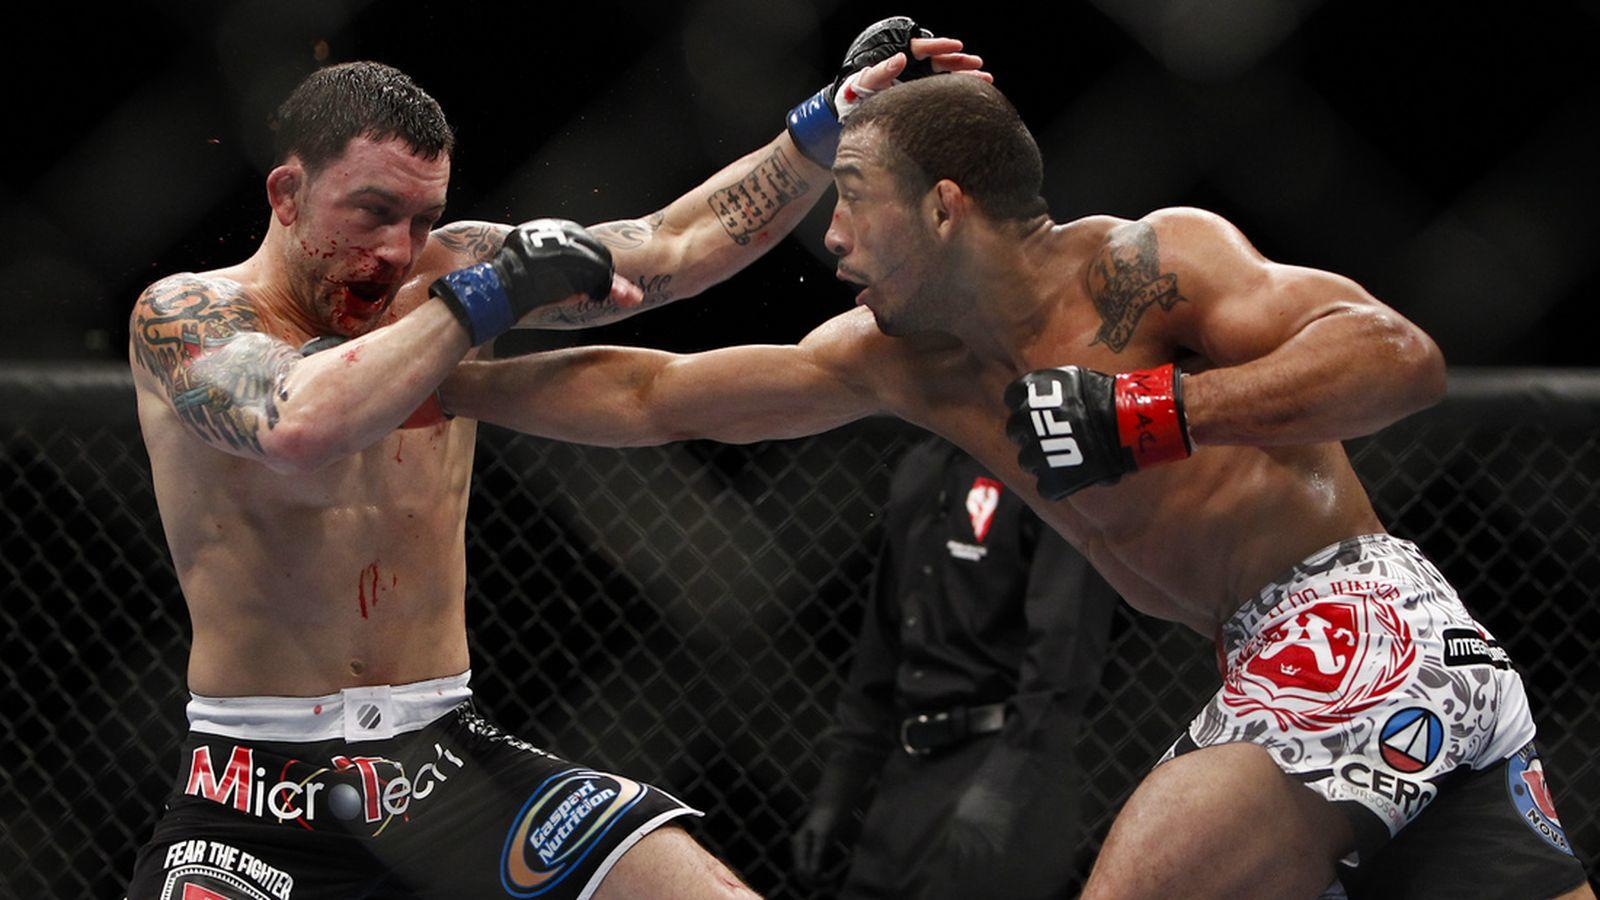 A battered Edgar takes a hard right hand from Jose Aldo.